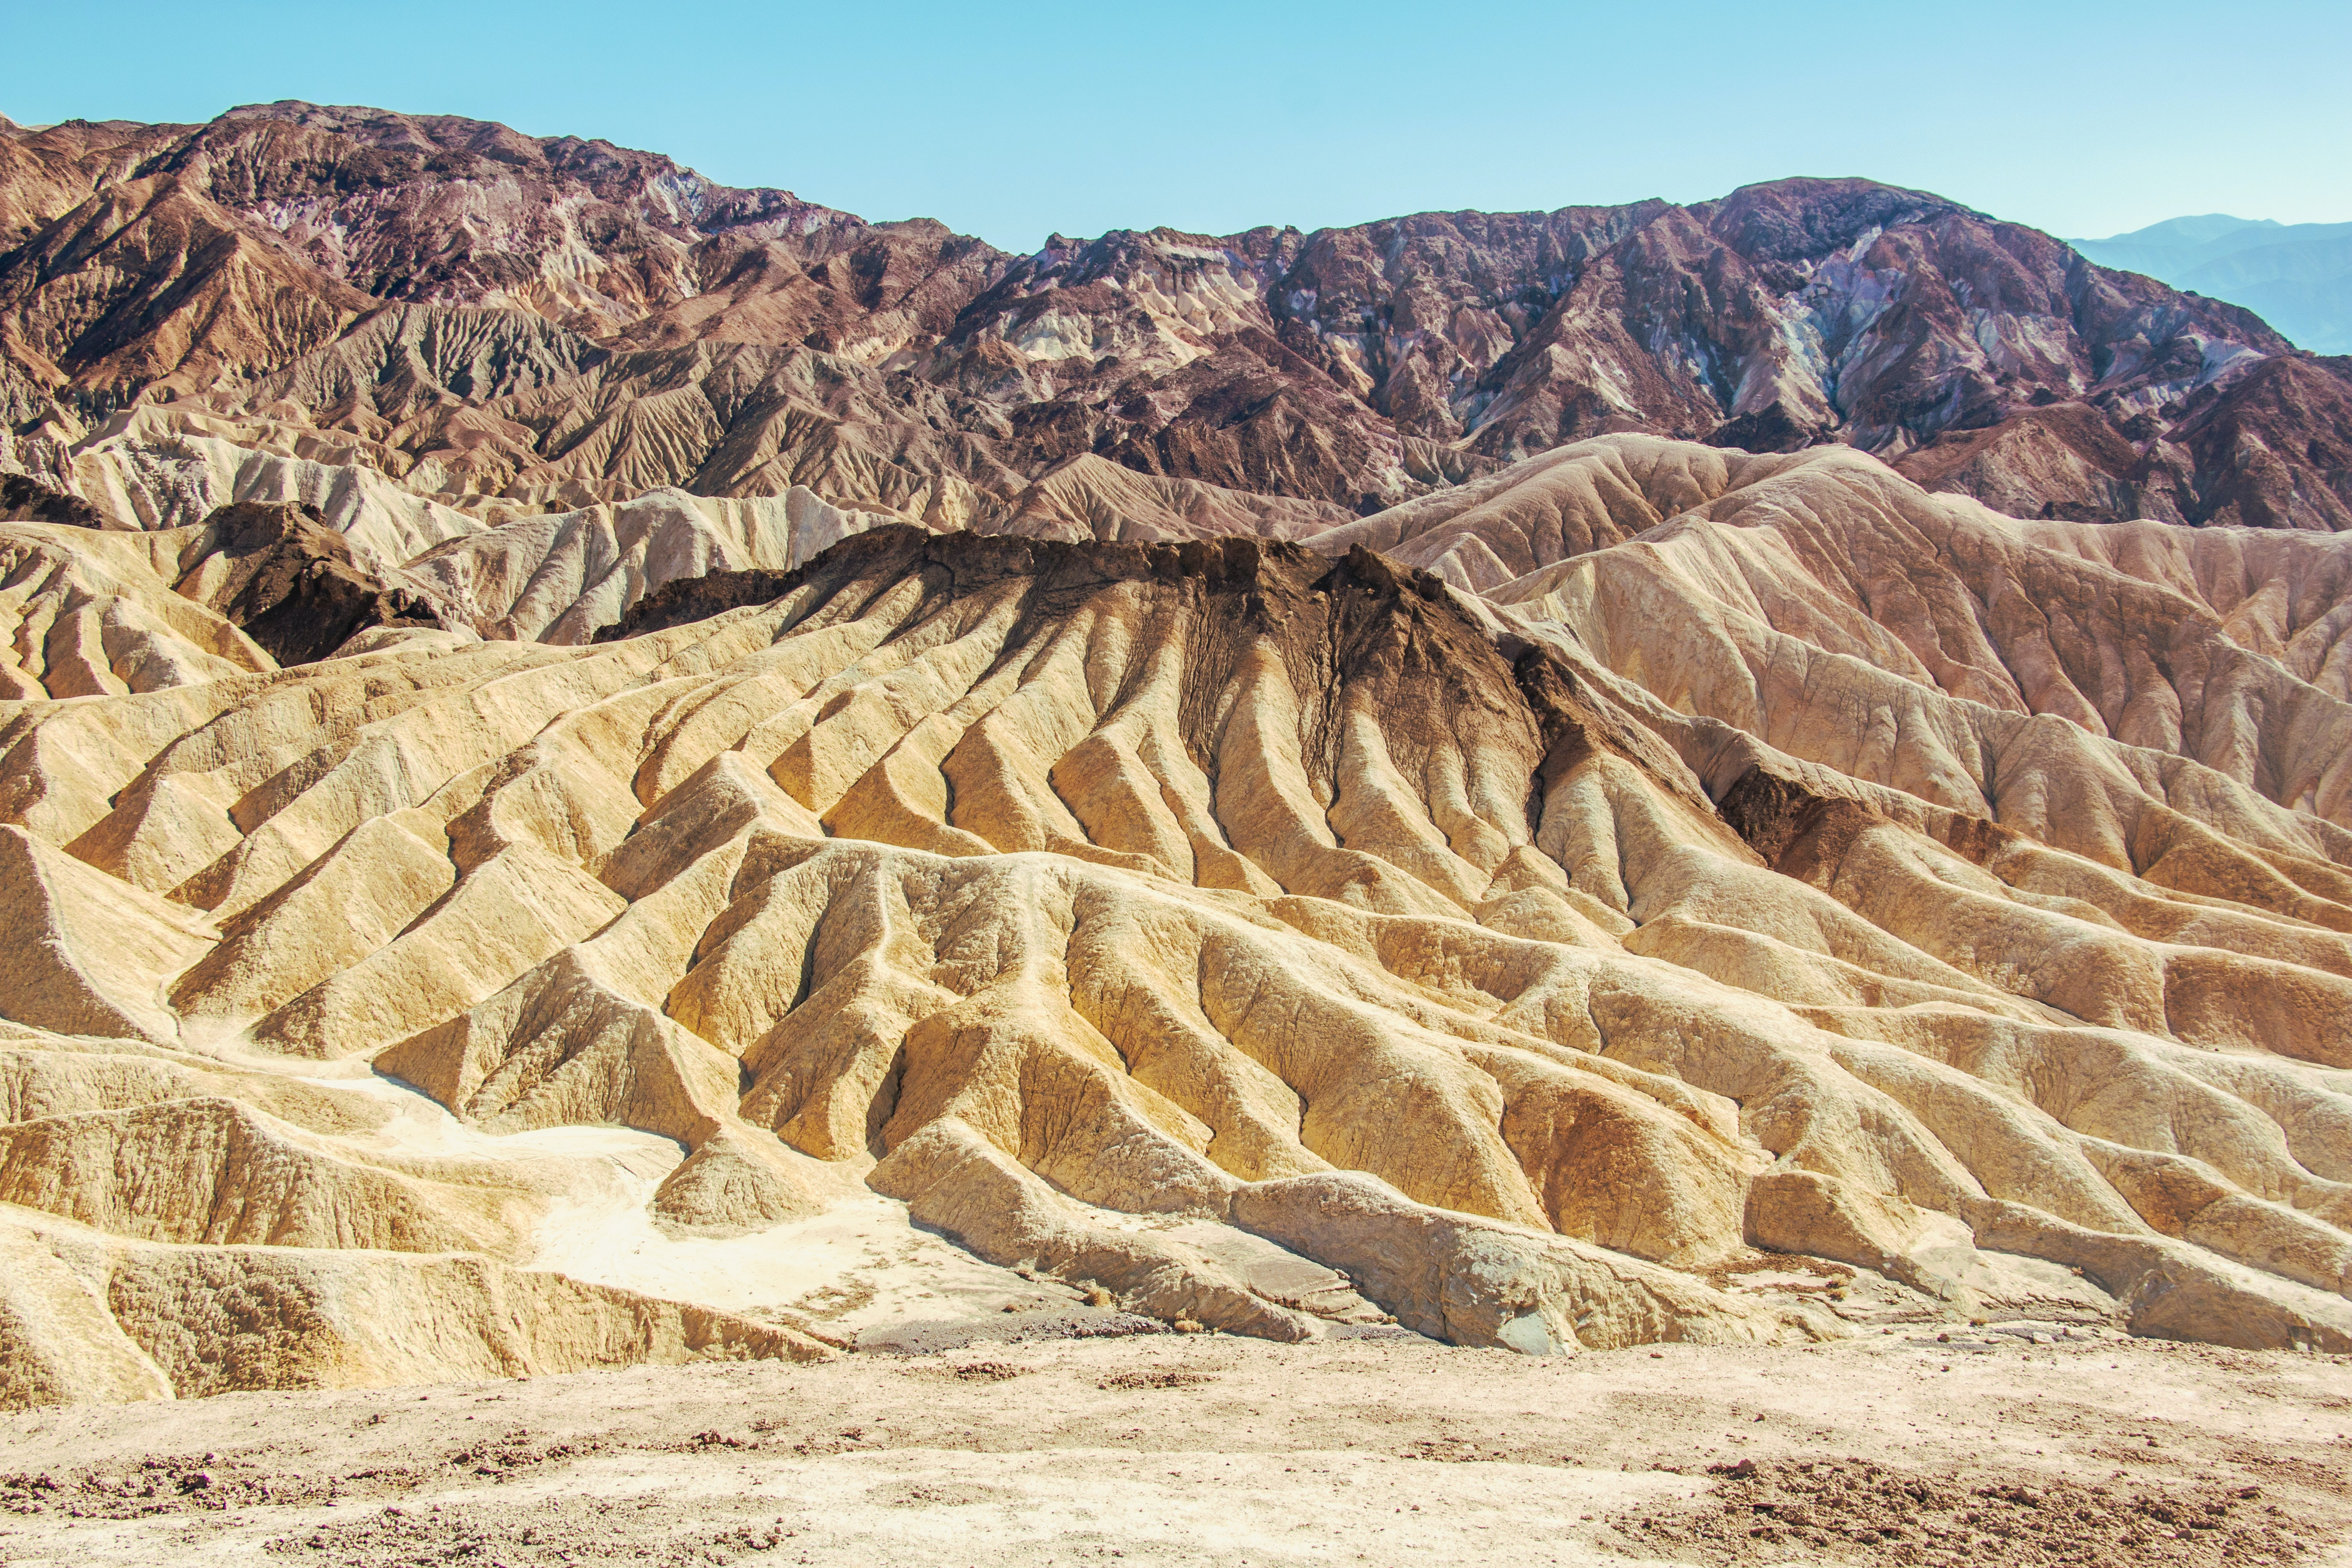 Natural rock formations in the desert sand of Death Valley